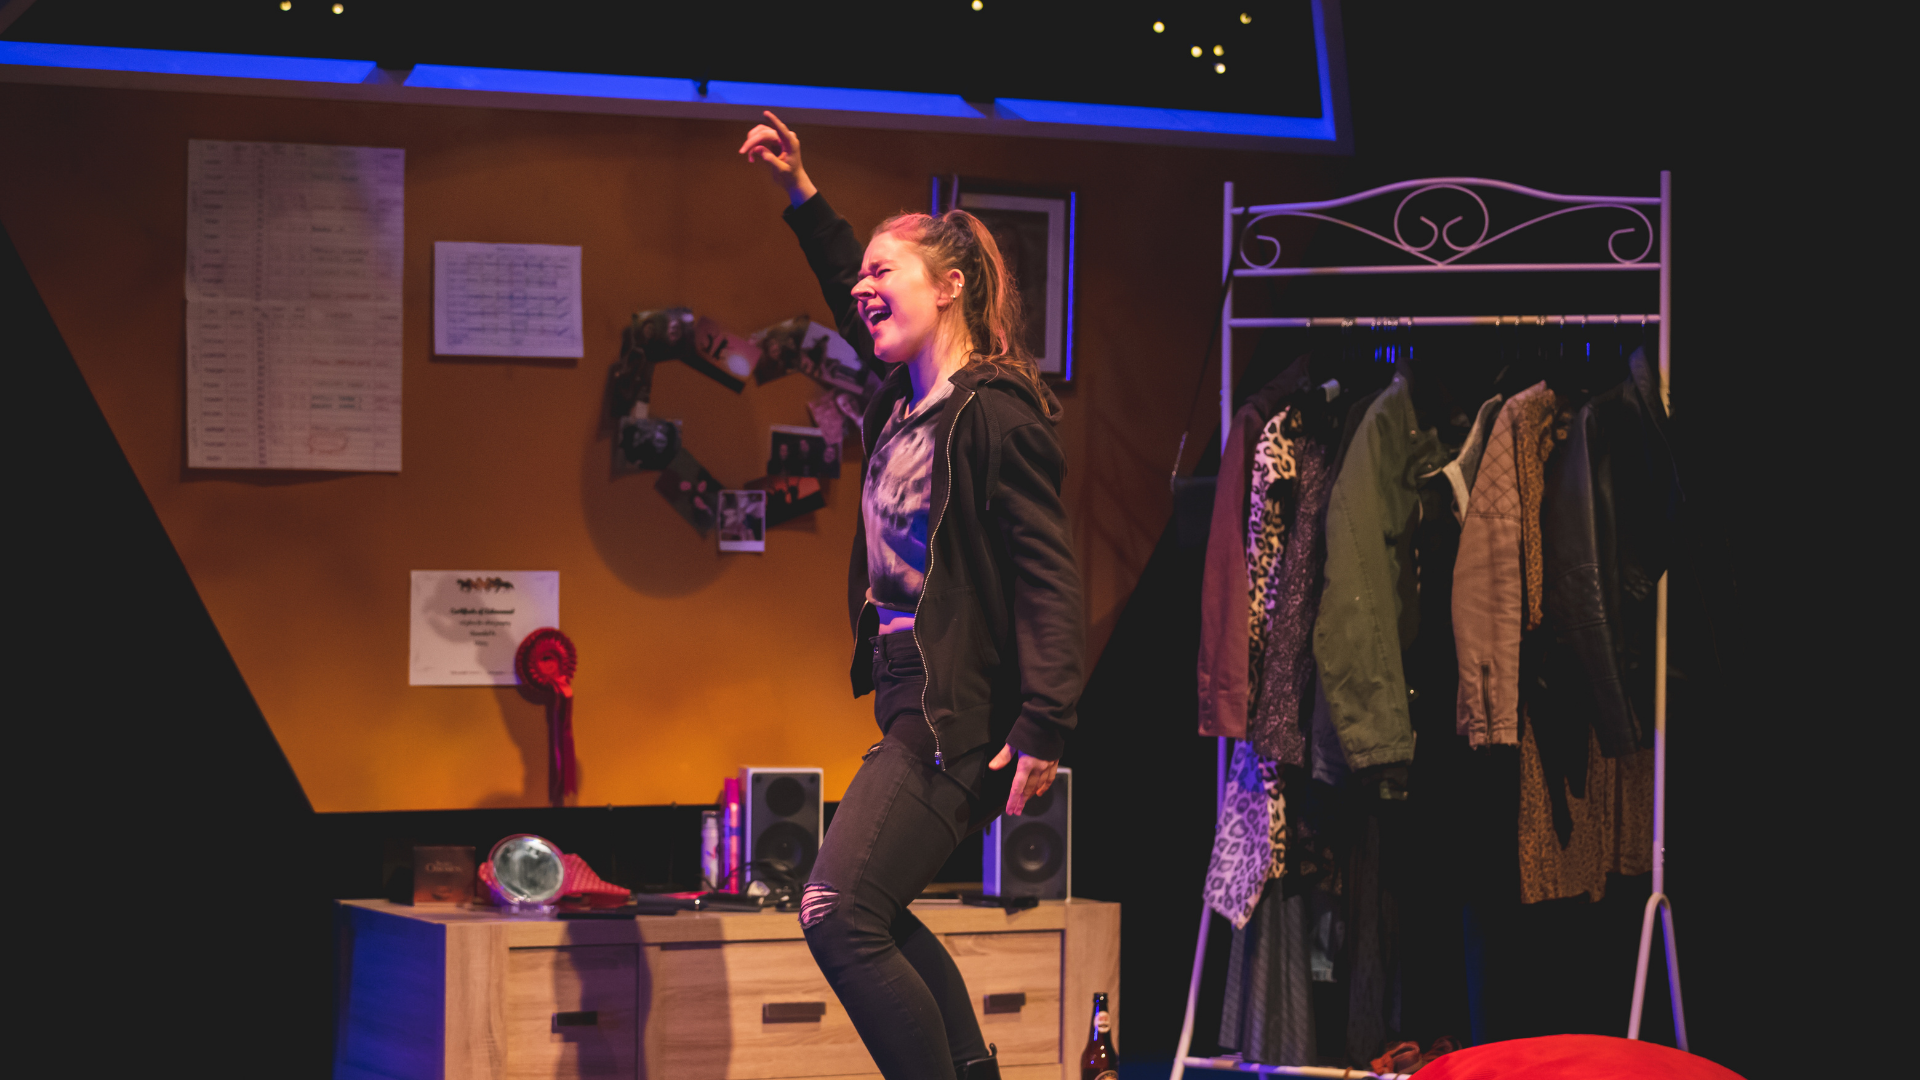 The Honey Man Production Photo: Misty (Amy Kennedy) dances in her bedroom, surrounded by clothes, fairy-lights and dressed in gothy black clothing